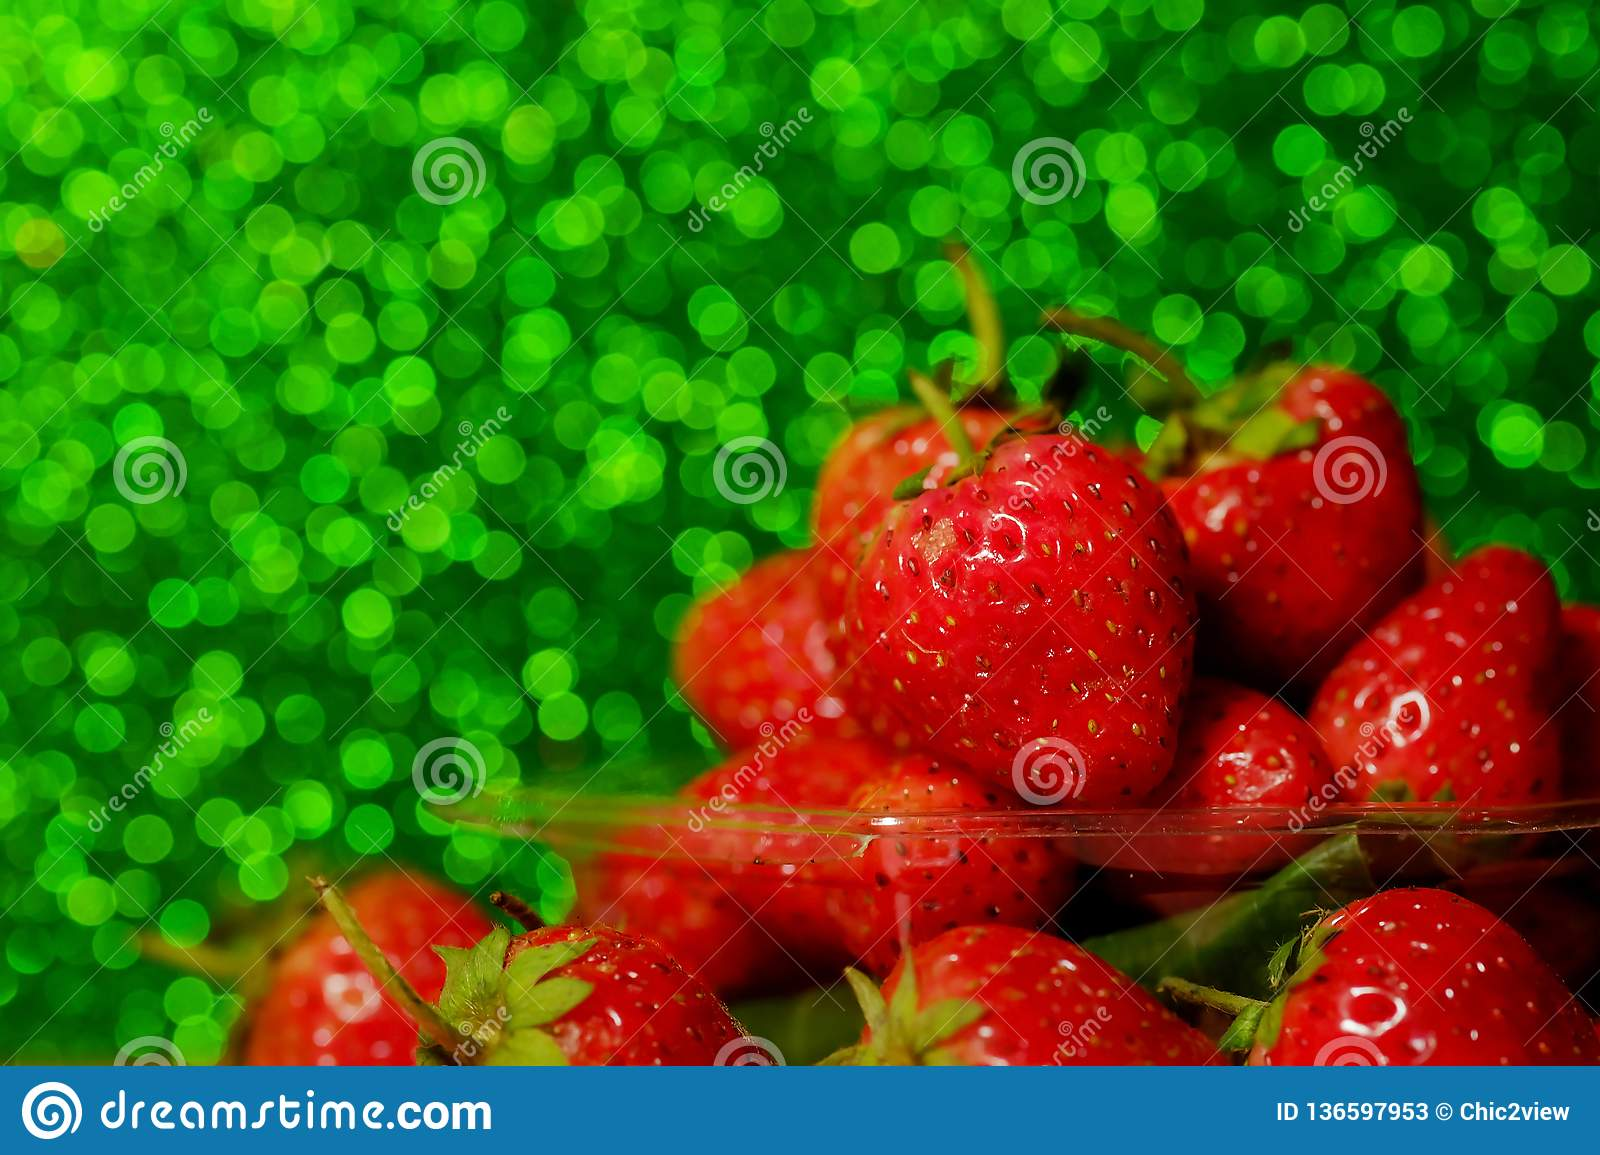 group of little strawberry soft focus with romantic green glitter bokeh background